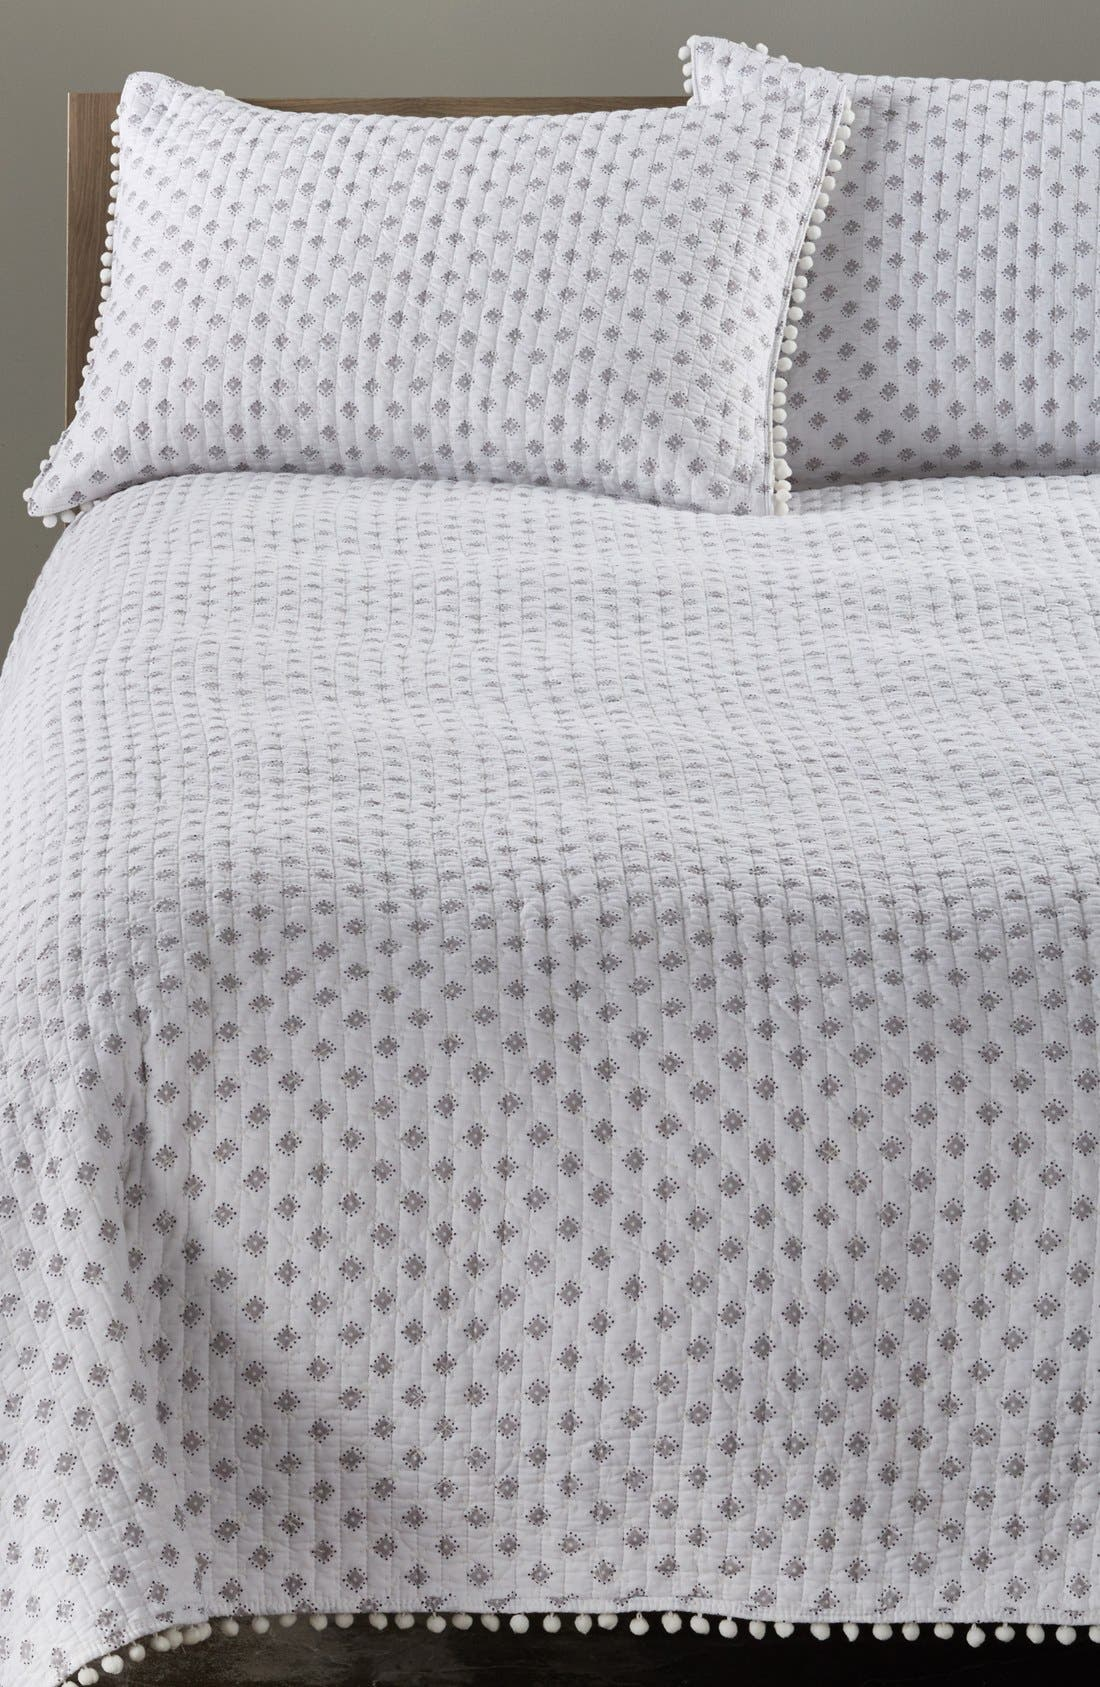 Levtex 'Astoria' Reversible Quilt